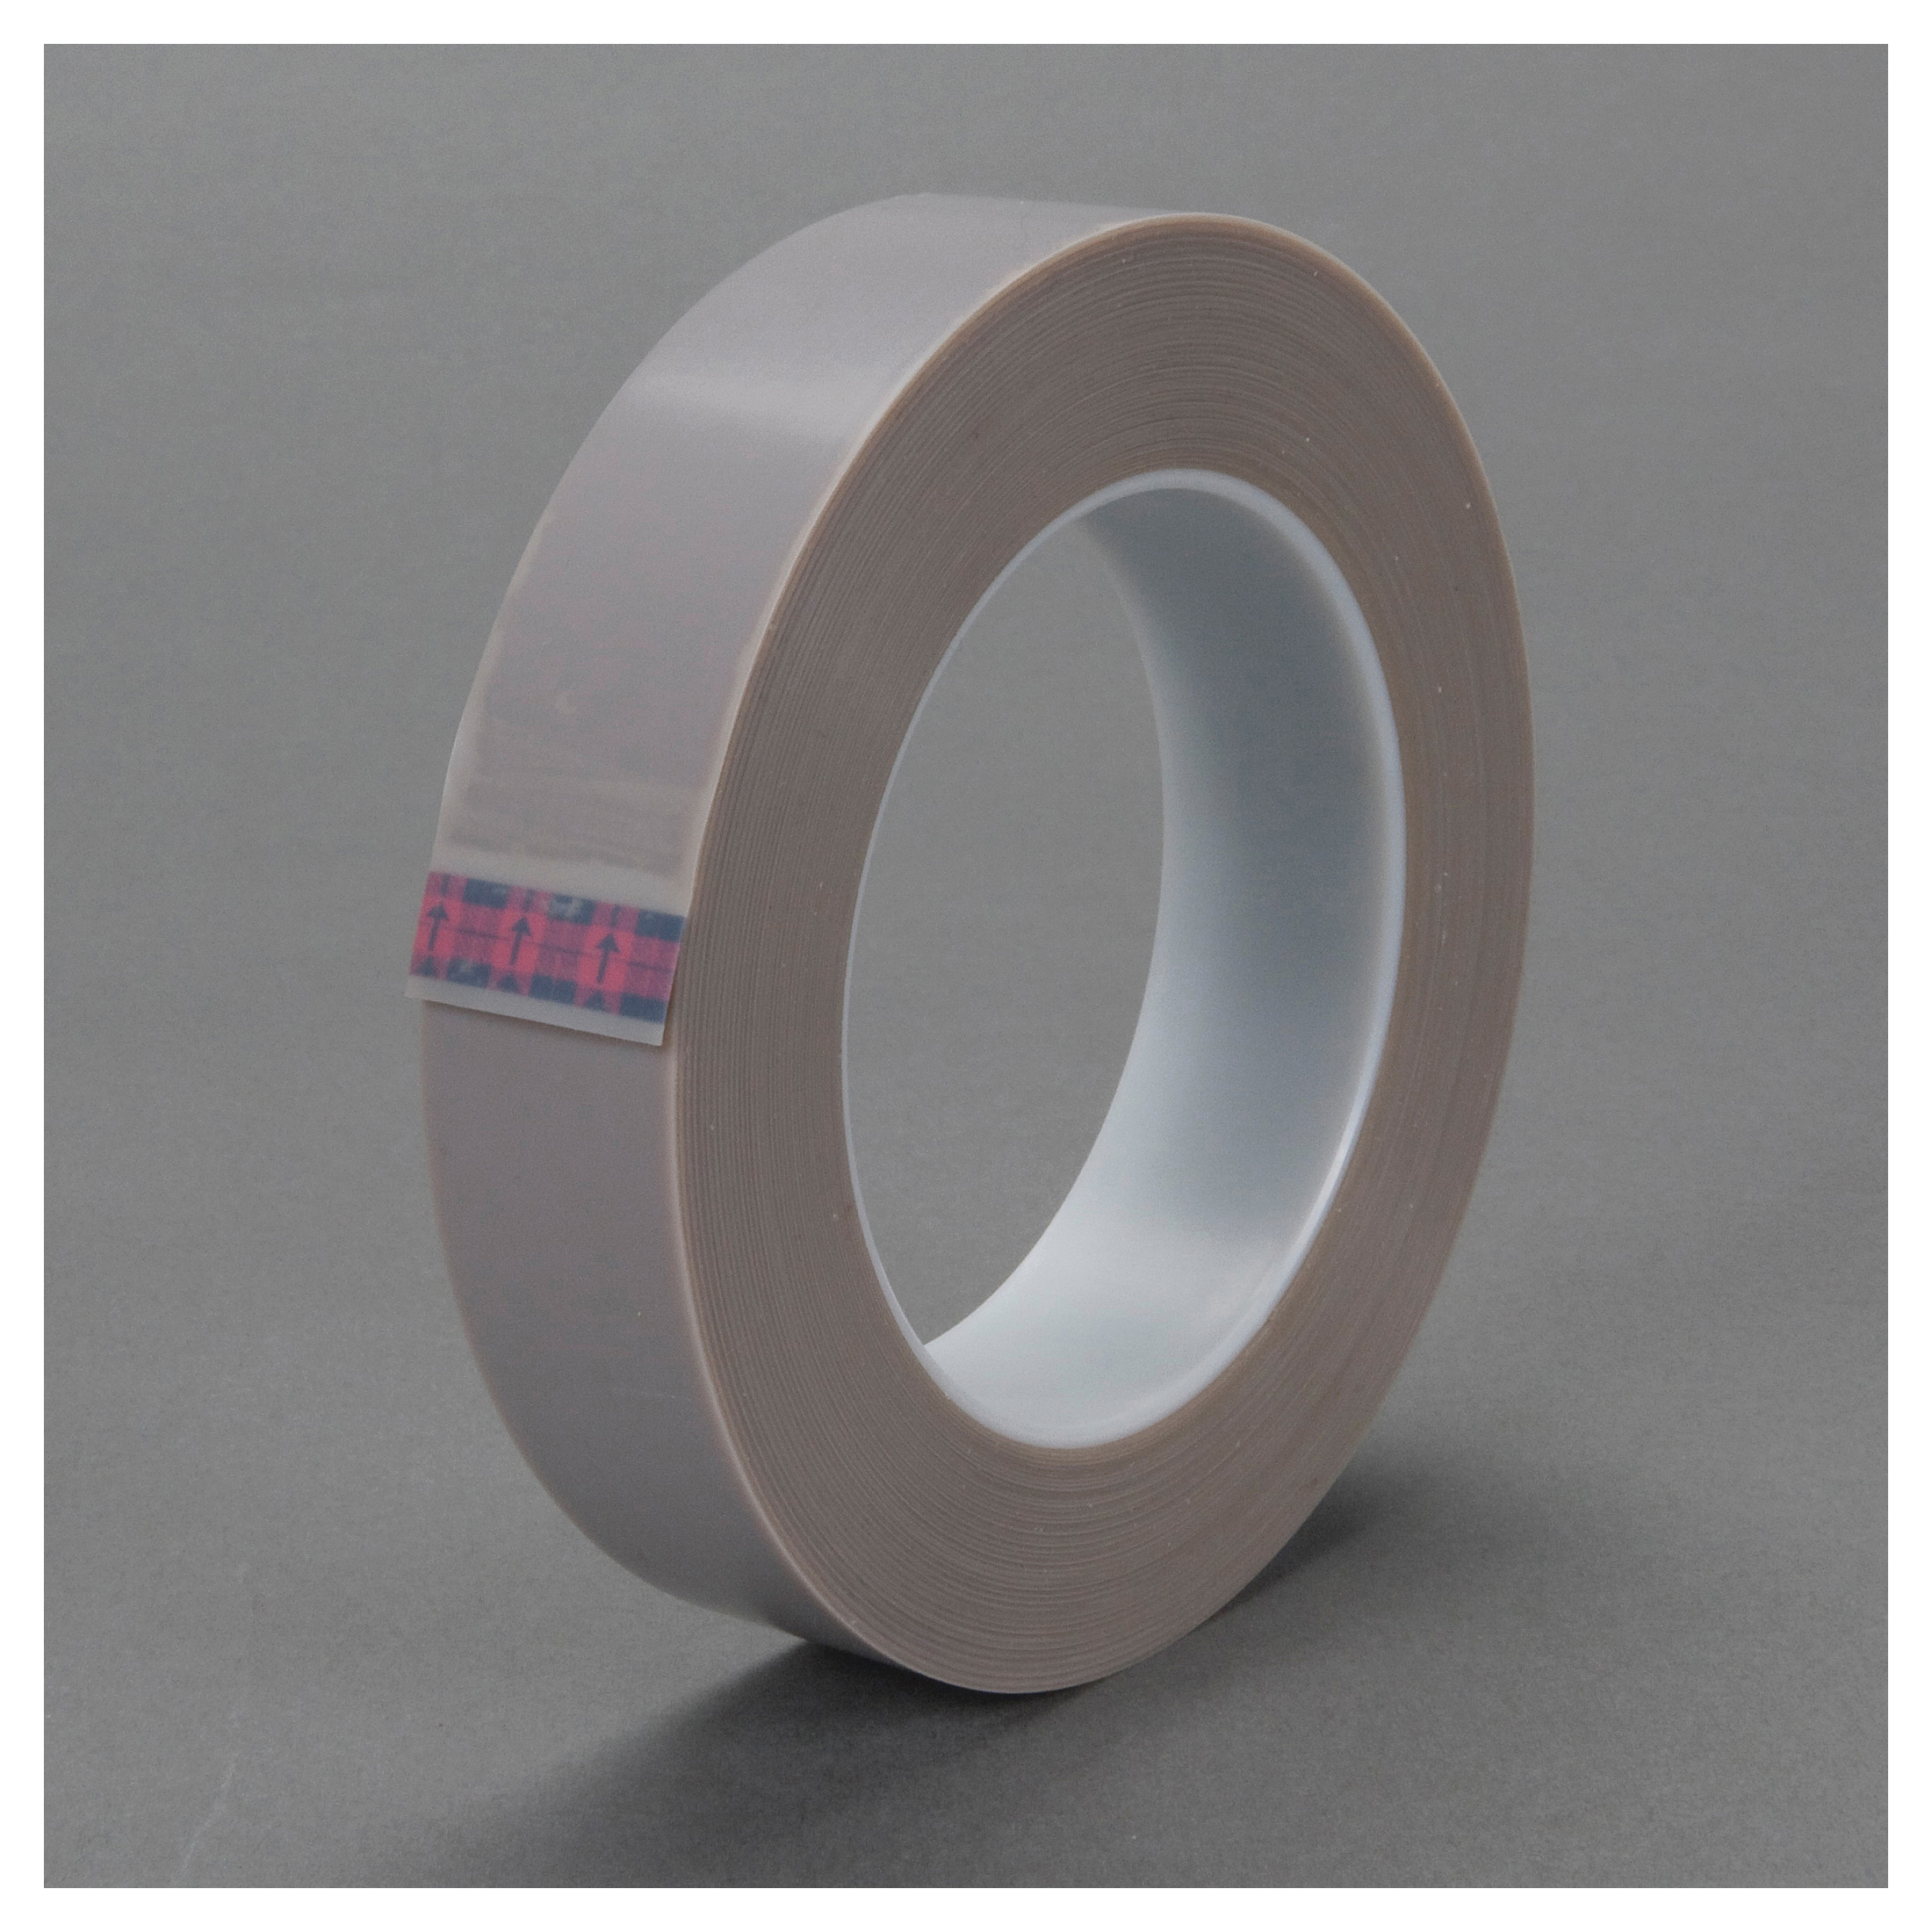 3M™ 021200-18895 Heavy Duty Film Tape, 36 yd L x 3/4 in W, 6.8 mil THK, Silicone Adhesive, 5 mil Skived PTFE Backing, Gray